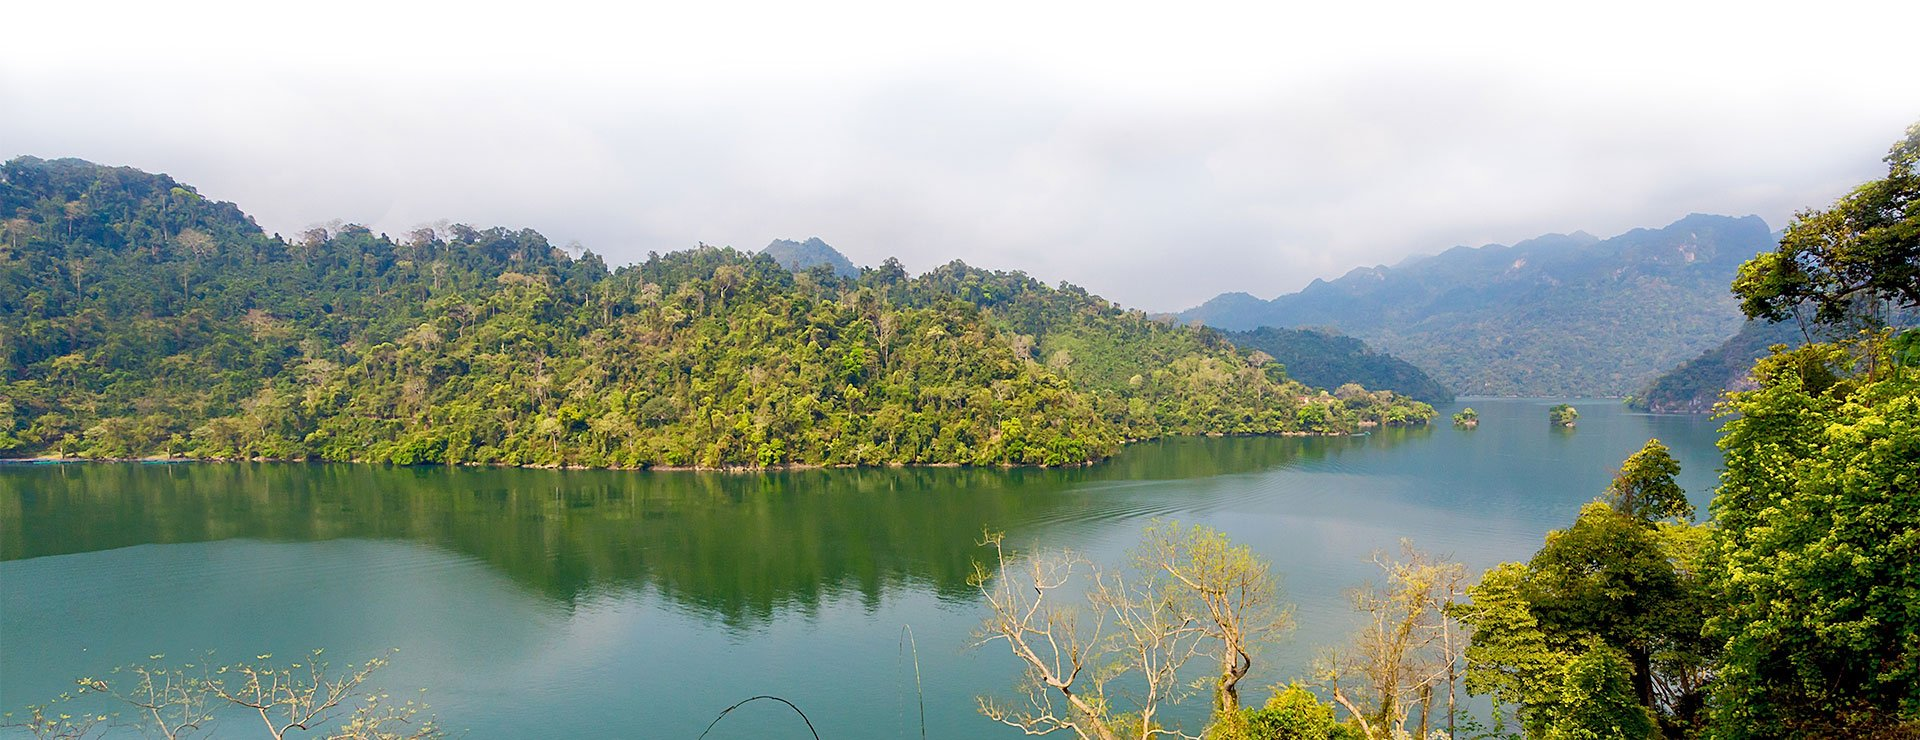 The adventure to find the most stunning lakes in Vietnam